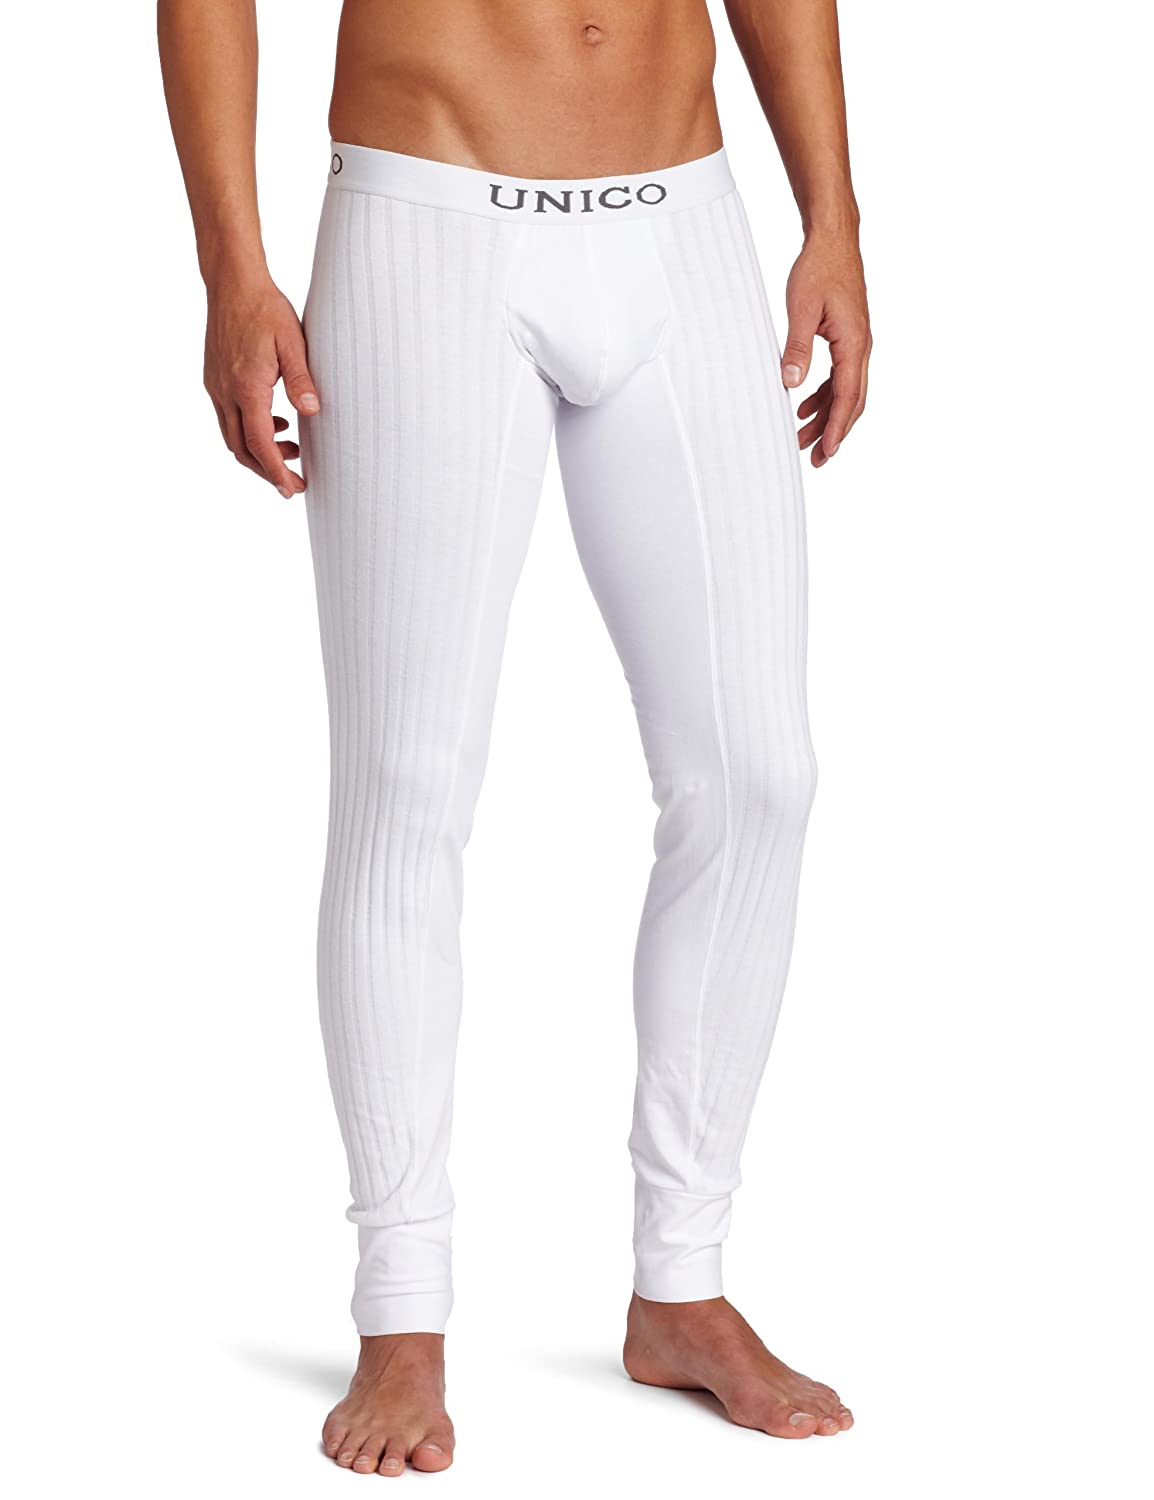 Mundo Unico Mens Intenso Long Johns at Amazon Mens Clothing store: Base Layer Bottoms